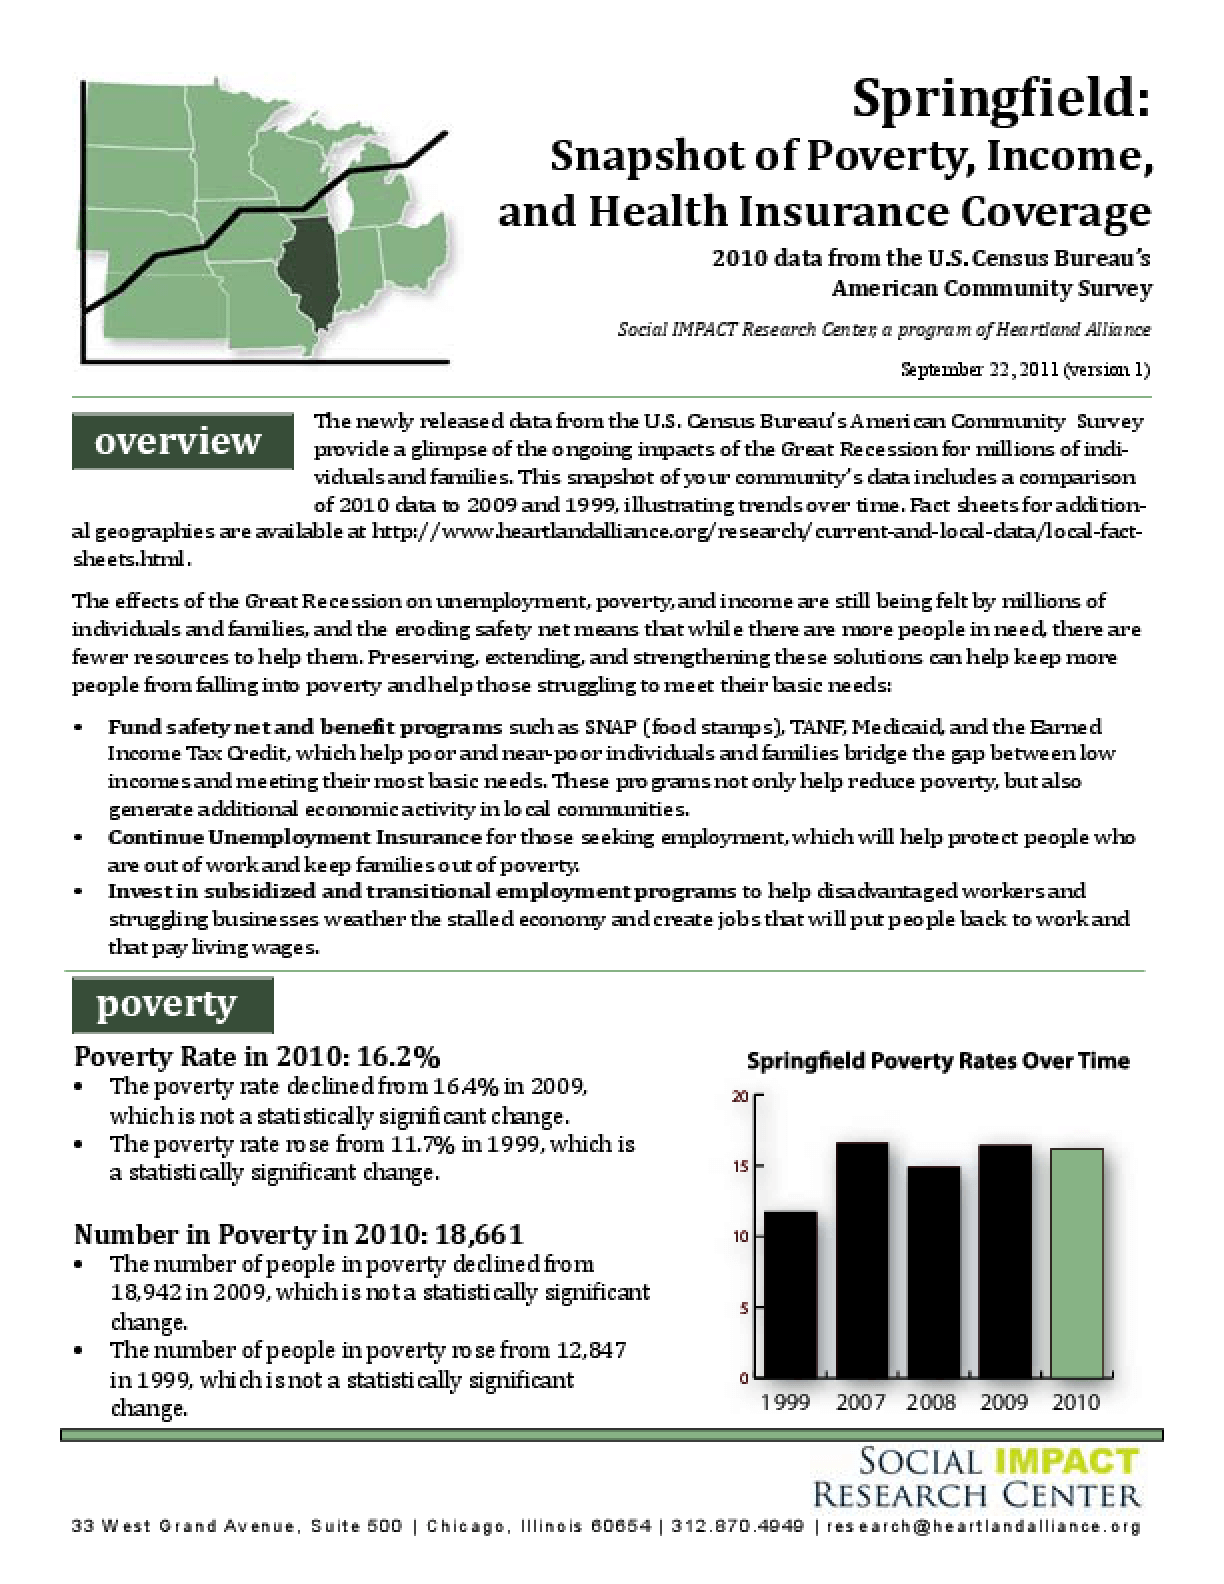 Springfield: Snapshot of Poverty, Income, and Health Insurance Coverage